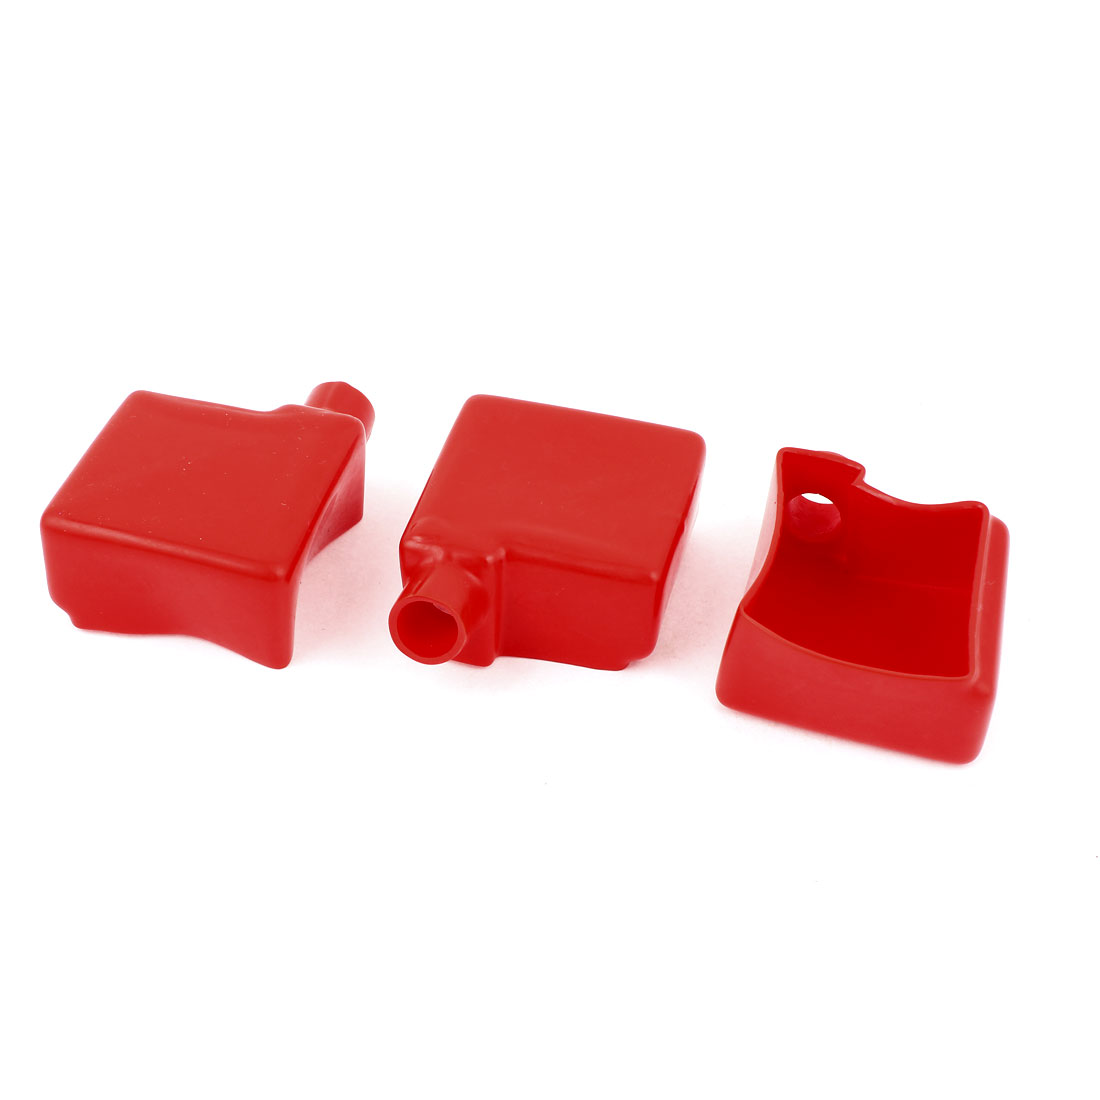 3Pcs Auto Car Battery Terminal Cover Insulation Boot Red 50mmx50mm